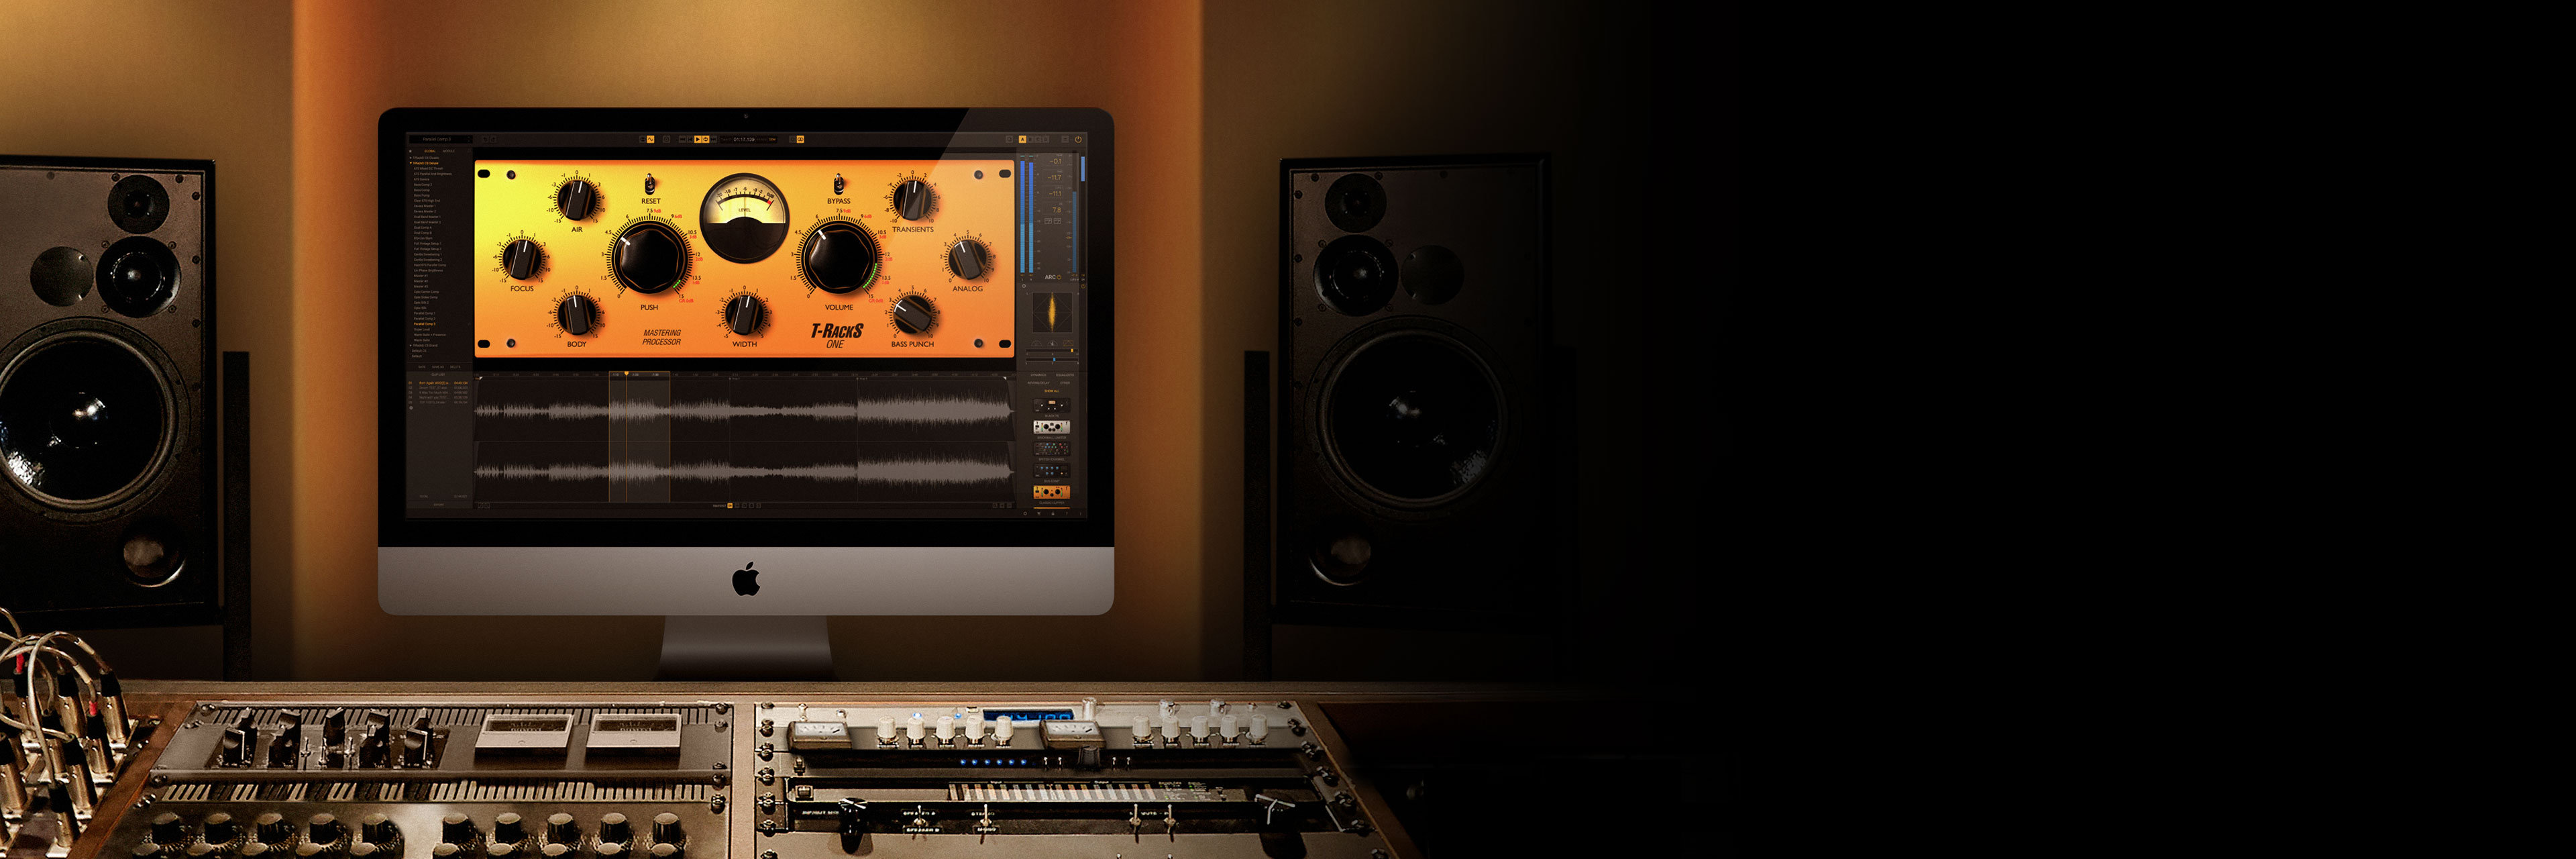 Ik Multimedia T Racks 5 30 Ddm To Audio Level Meter Matching That World Class Sound Has Never Been Easier